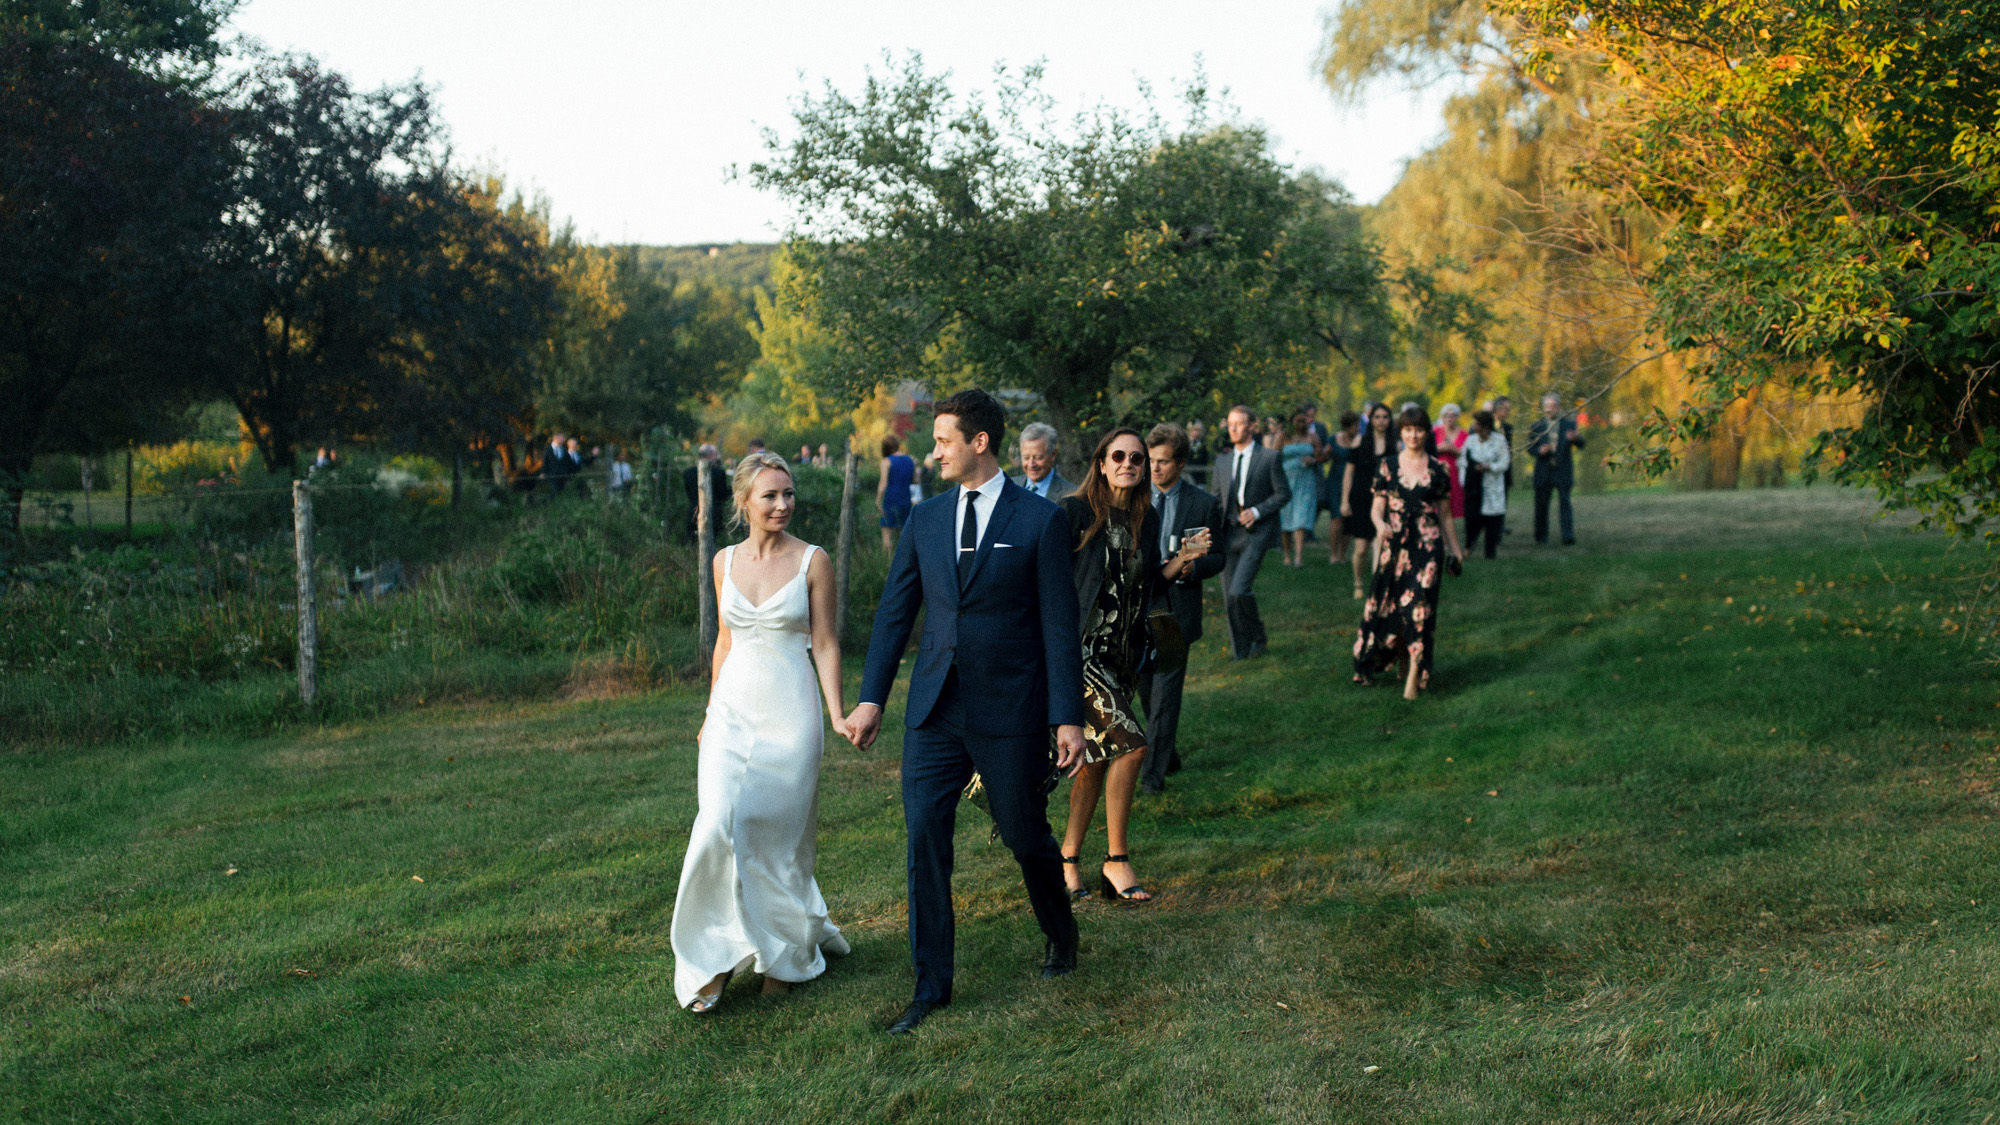 upstate_new_york_wedding_alec_vanderboom-0089.jpg